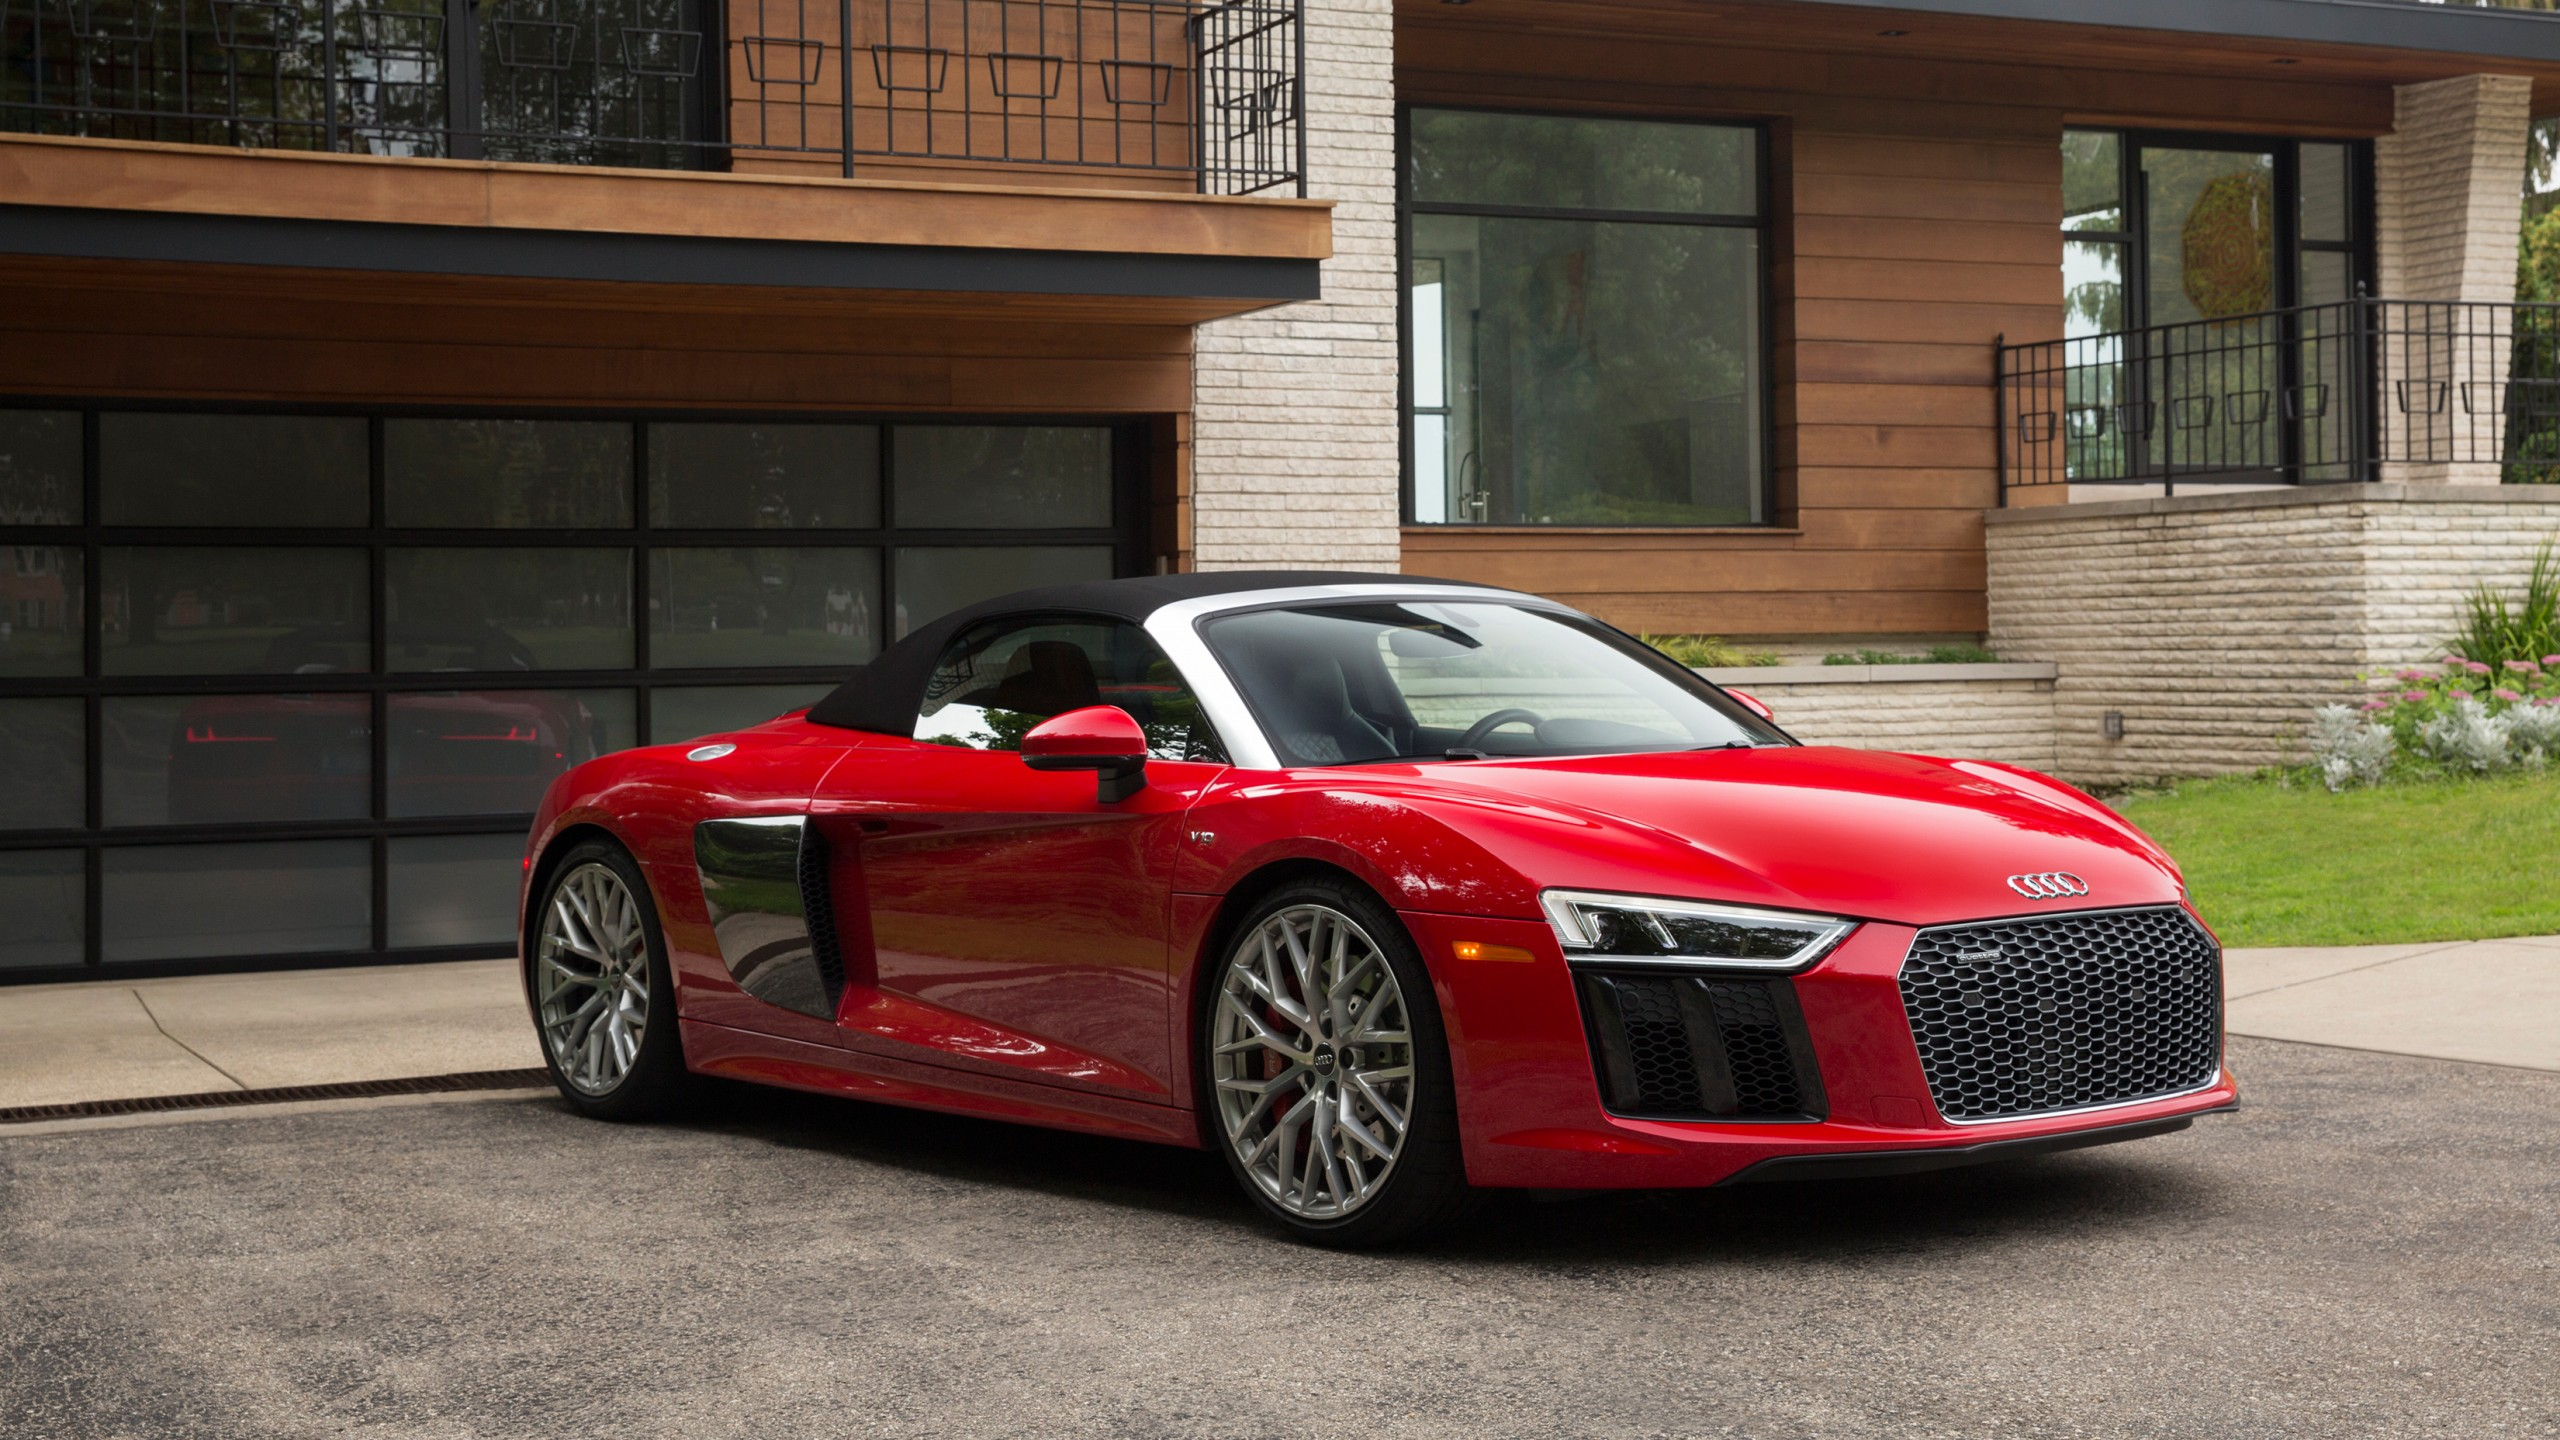 2018 Audi R8 Spyder V10 Plus Wallpaper Hd Car Wallpapers